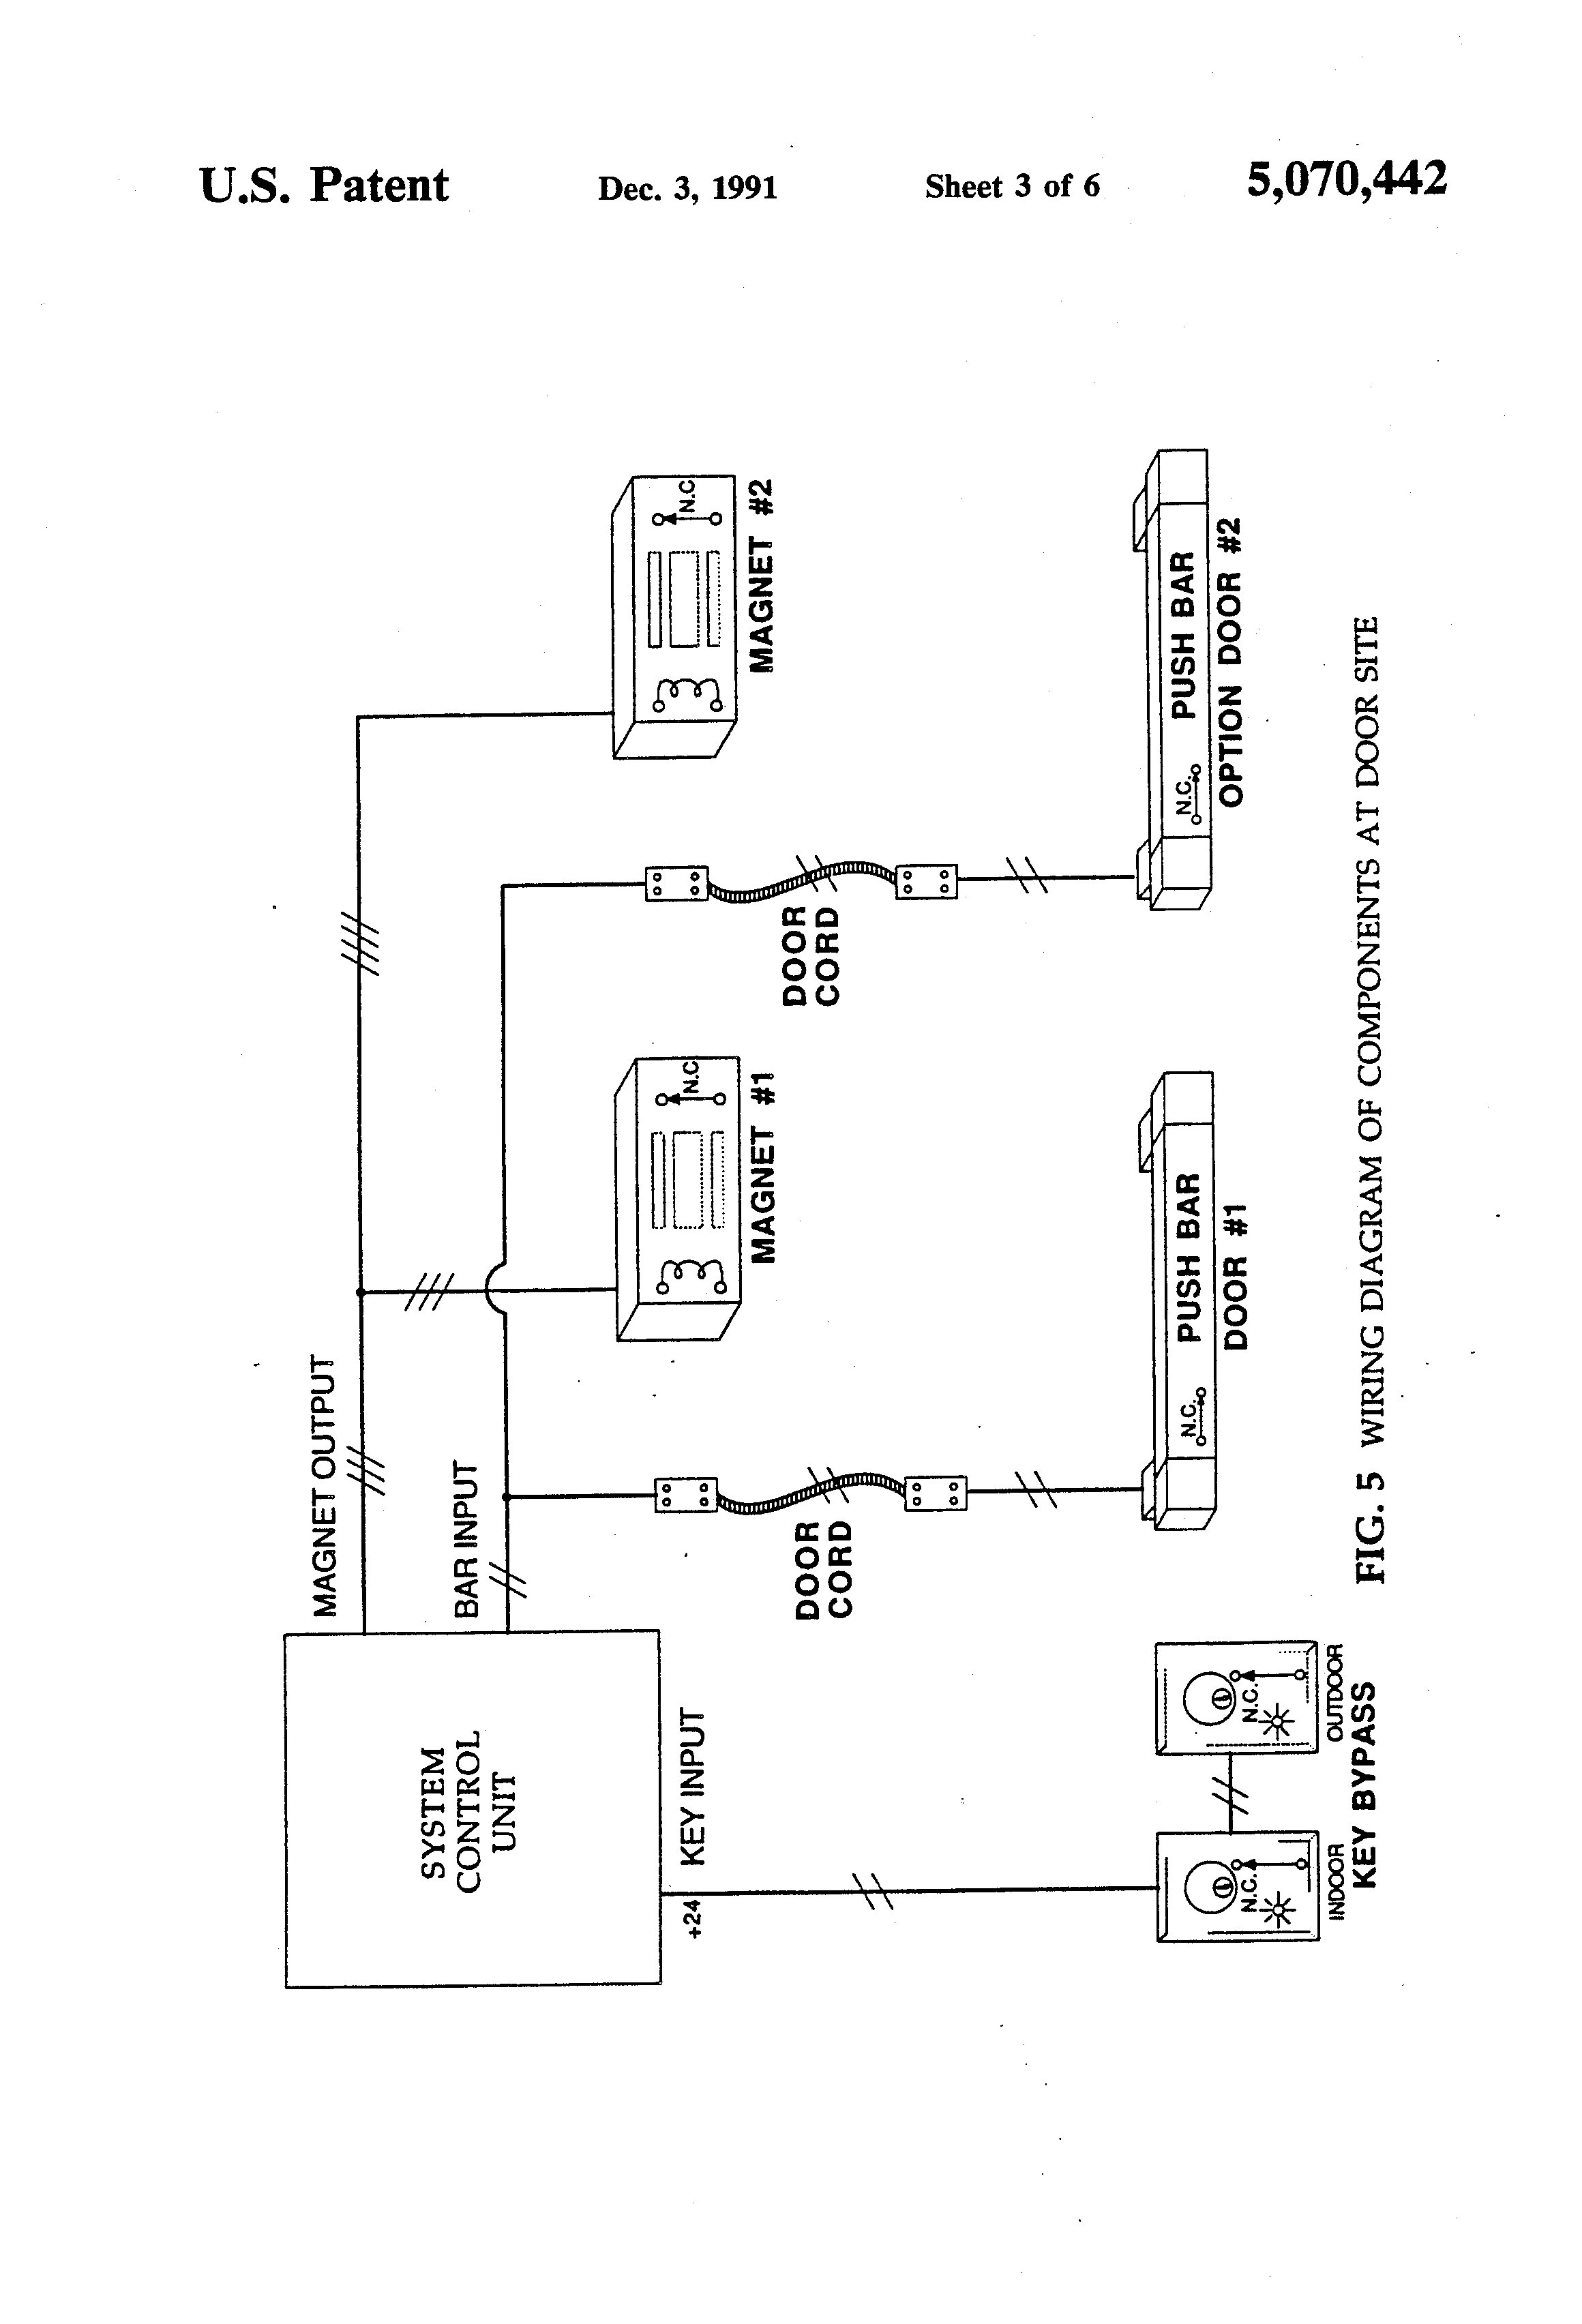 Renault Scenic Parking Brake Wiring Diagram Libraries Brakes Librarypioneer Bypass Unique